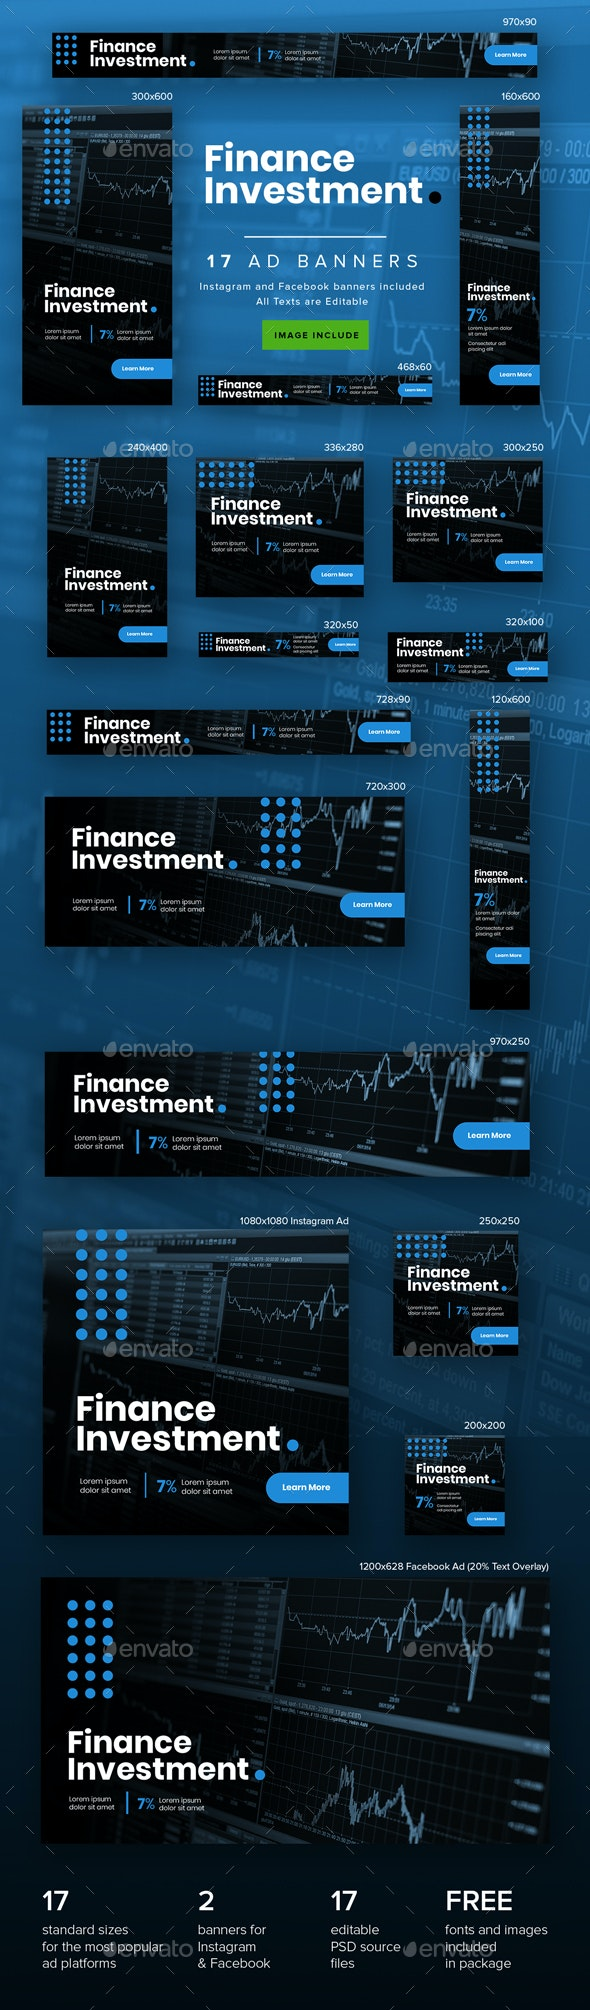 Finance Investment Ad Banners - Banners & Ads Web Elements